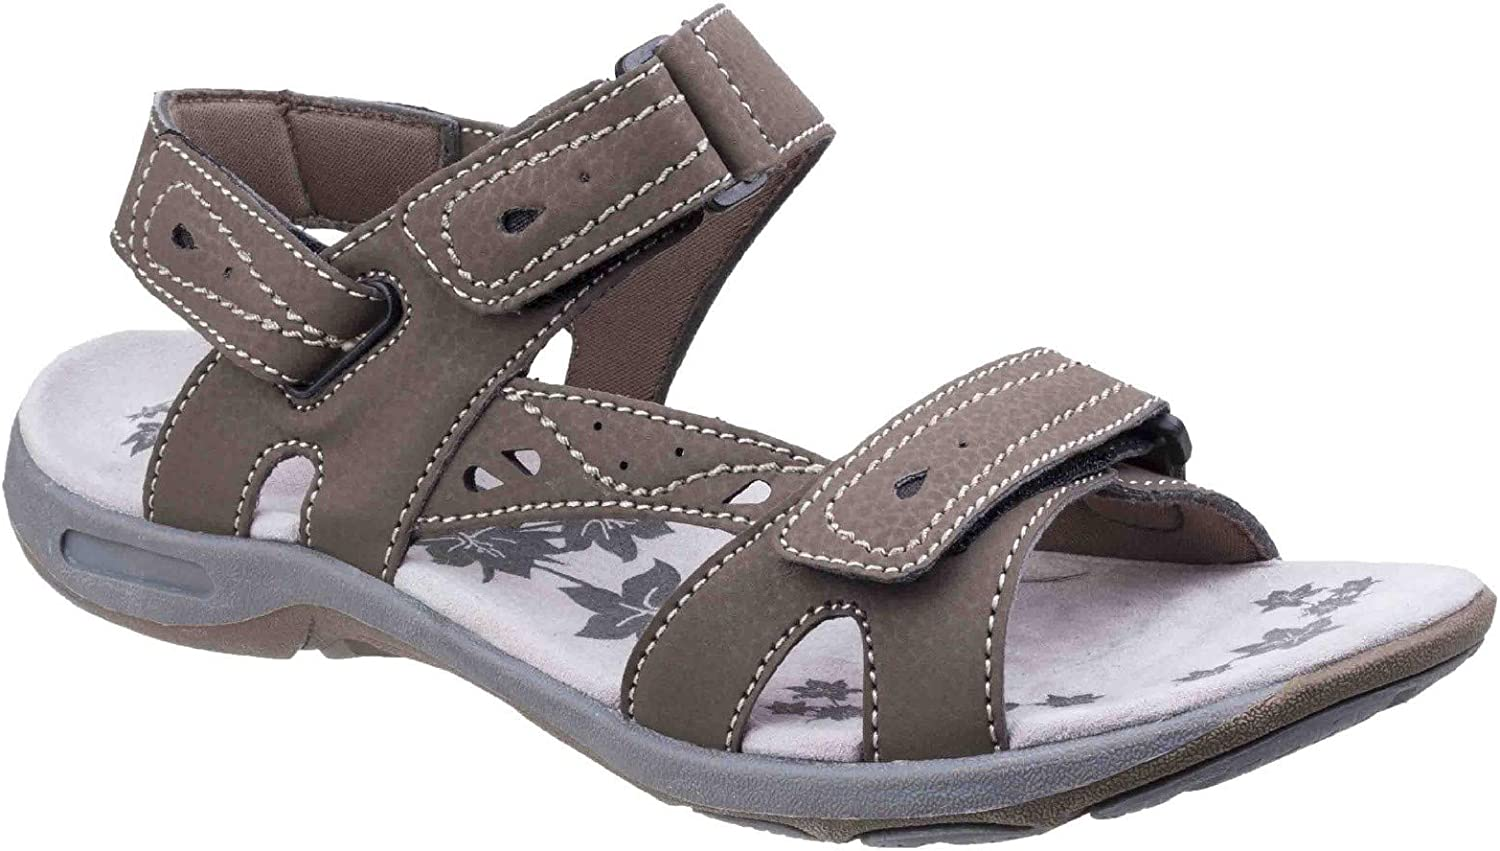 Cotswold Womens Highworth Sandal Brown Size UK 6 EU 39